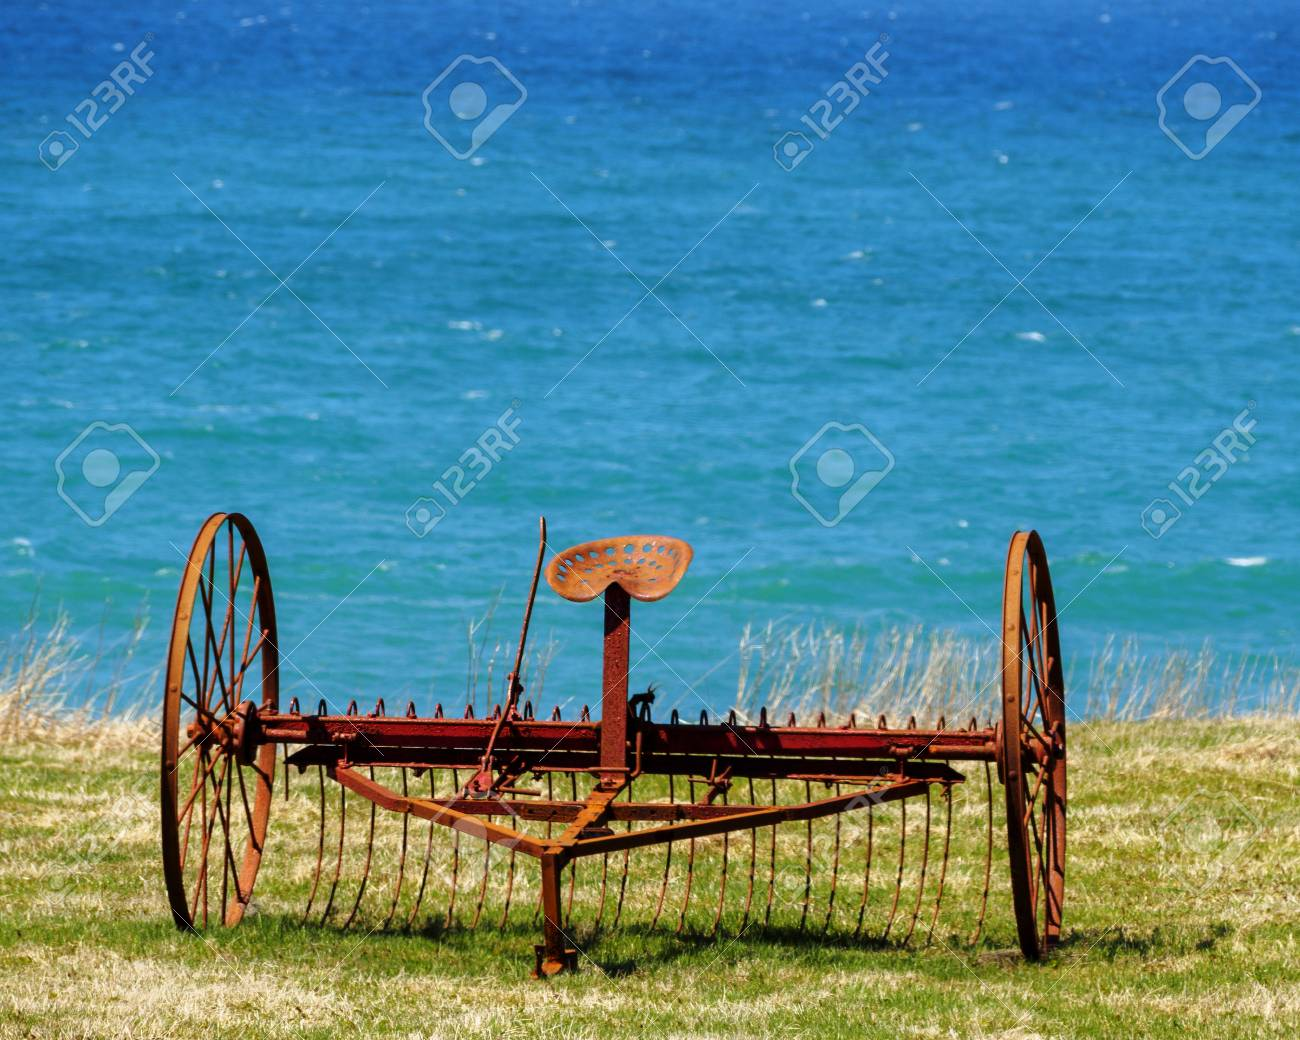 Old horse drawn hay rake in a field by the ocean